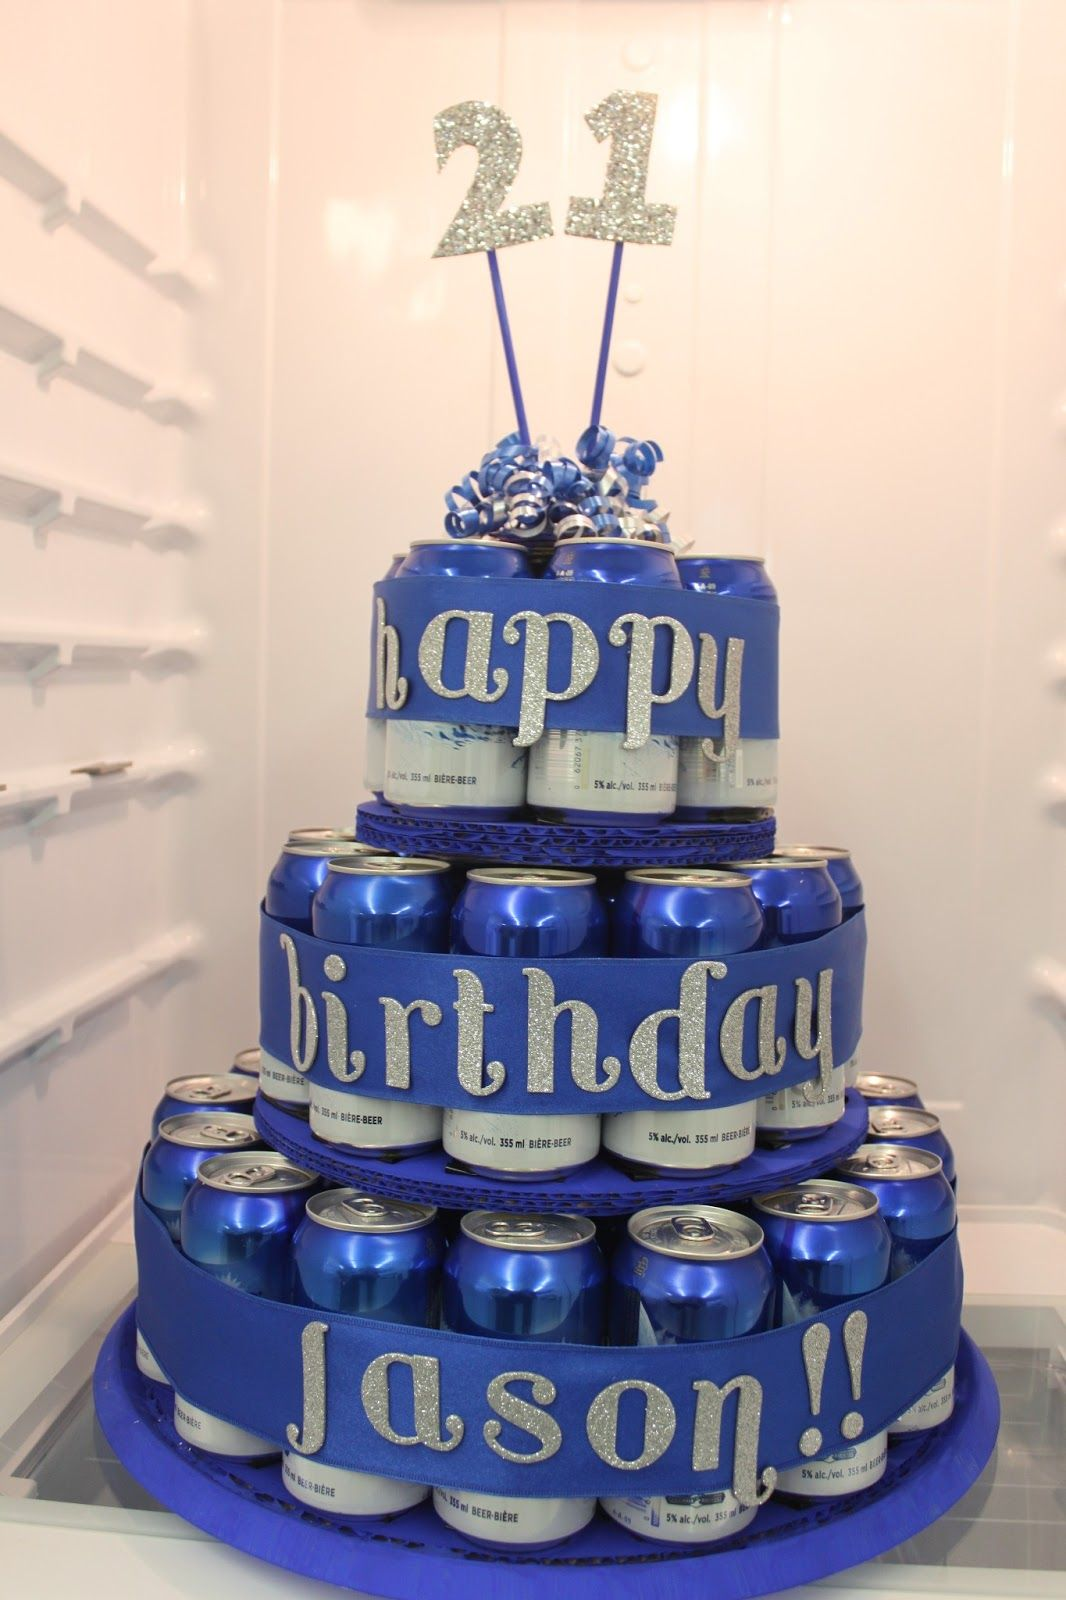 Beer Cake Design Ideas : Made by Samantha: Beer Can Birthday Cake Cute Things ...